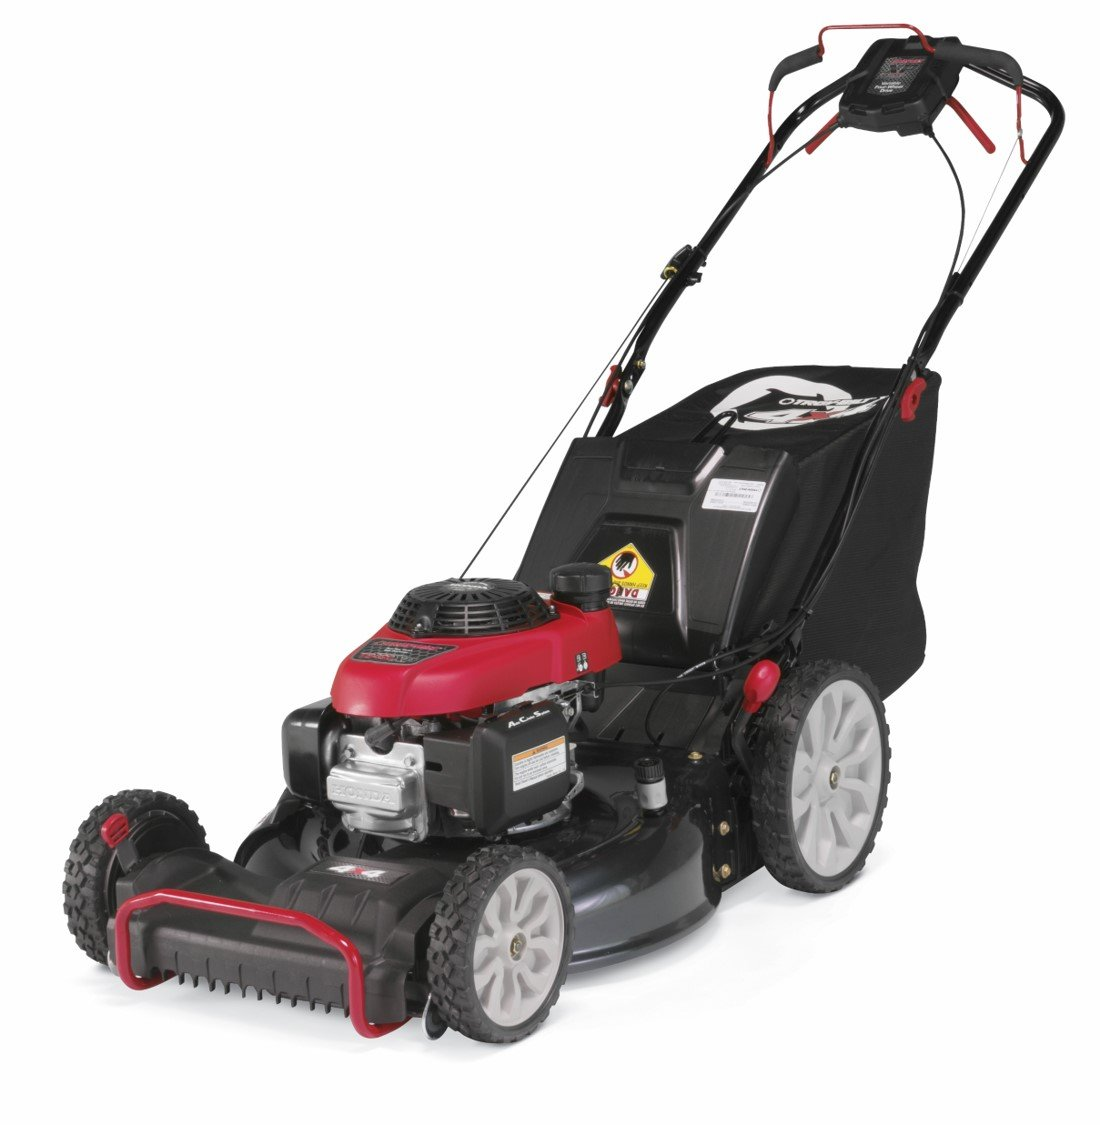 Troy-Bilt TB490 Self-Propelled Mower review